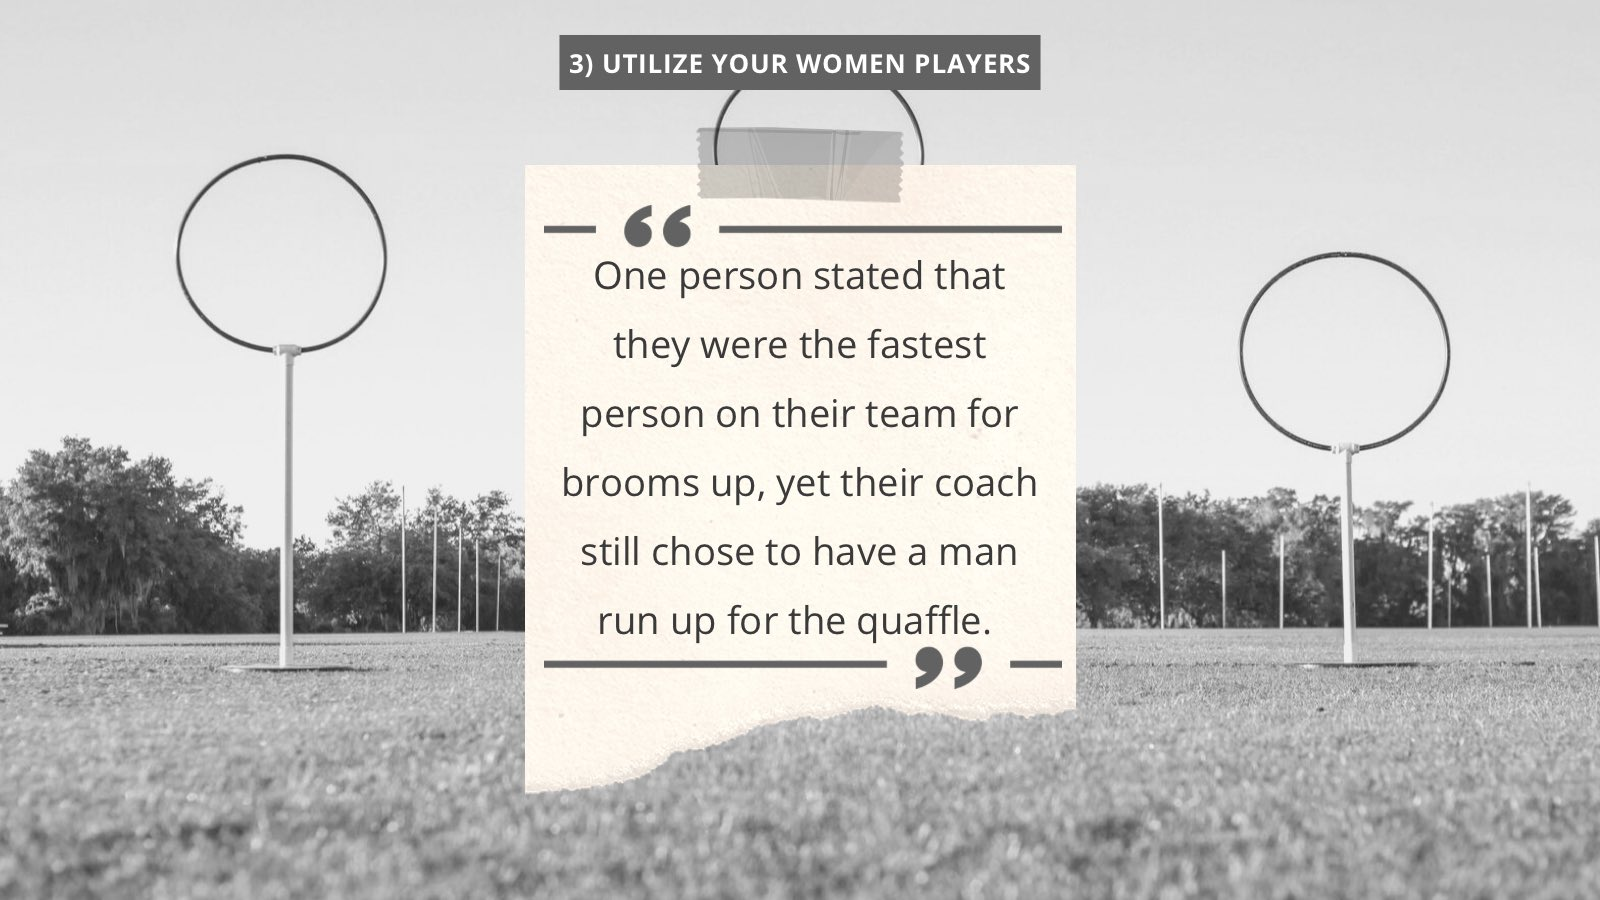 The third takeaway is about utilizing women players.